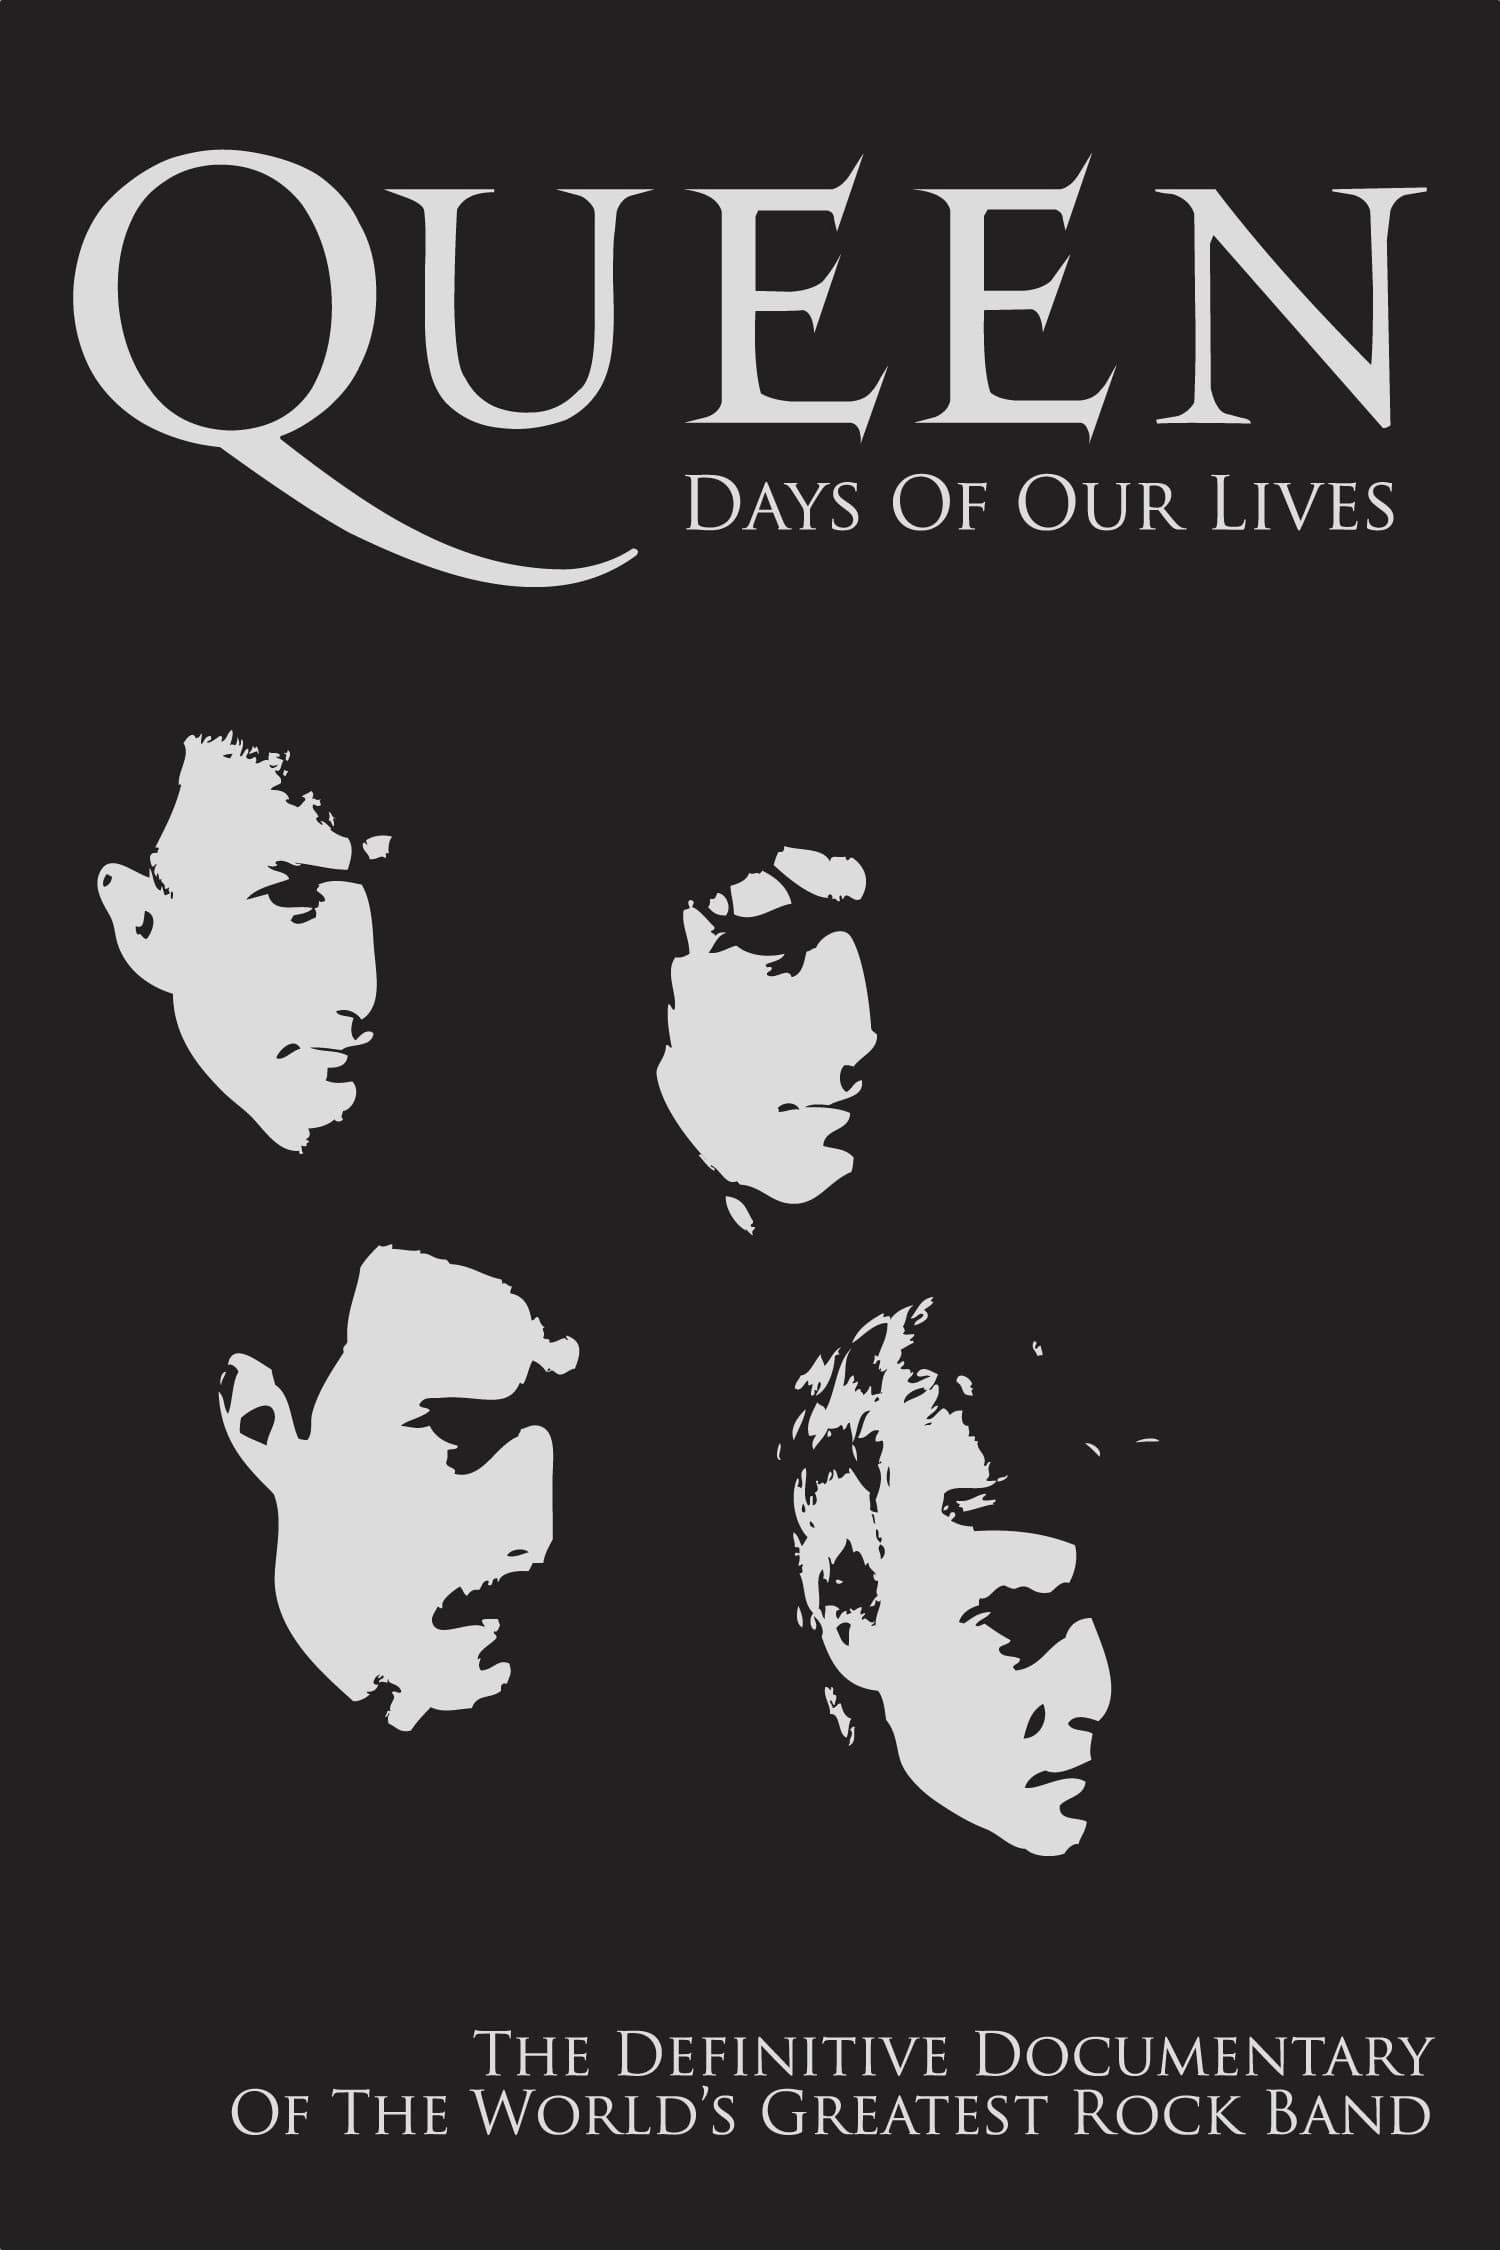 Ver Hd Queen Days Of Our Lives Pelicula Completa Dvd Mega Latino 2011 En Latino Queen Daysofourlives Days Of Our Lives Documentaries Greatest Rock Bands